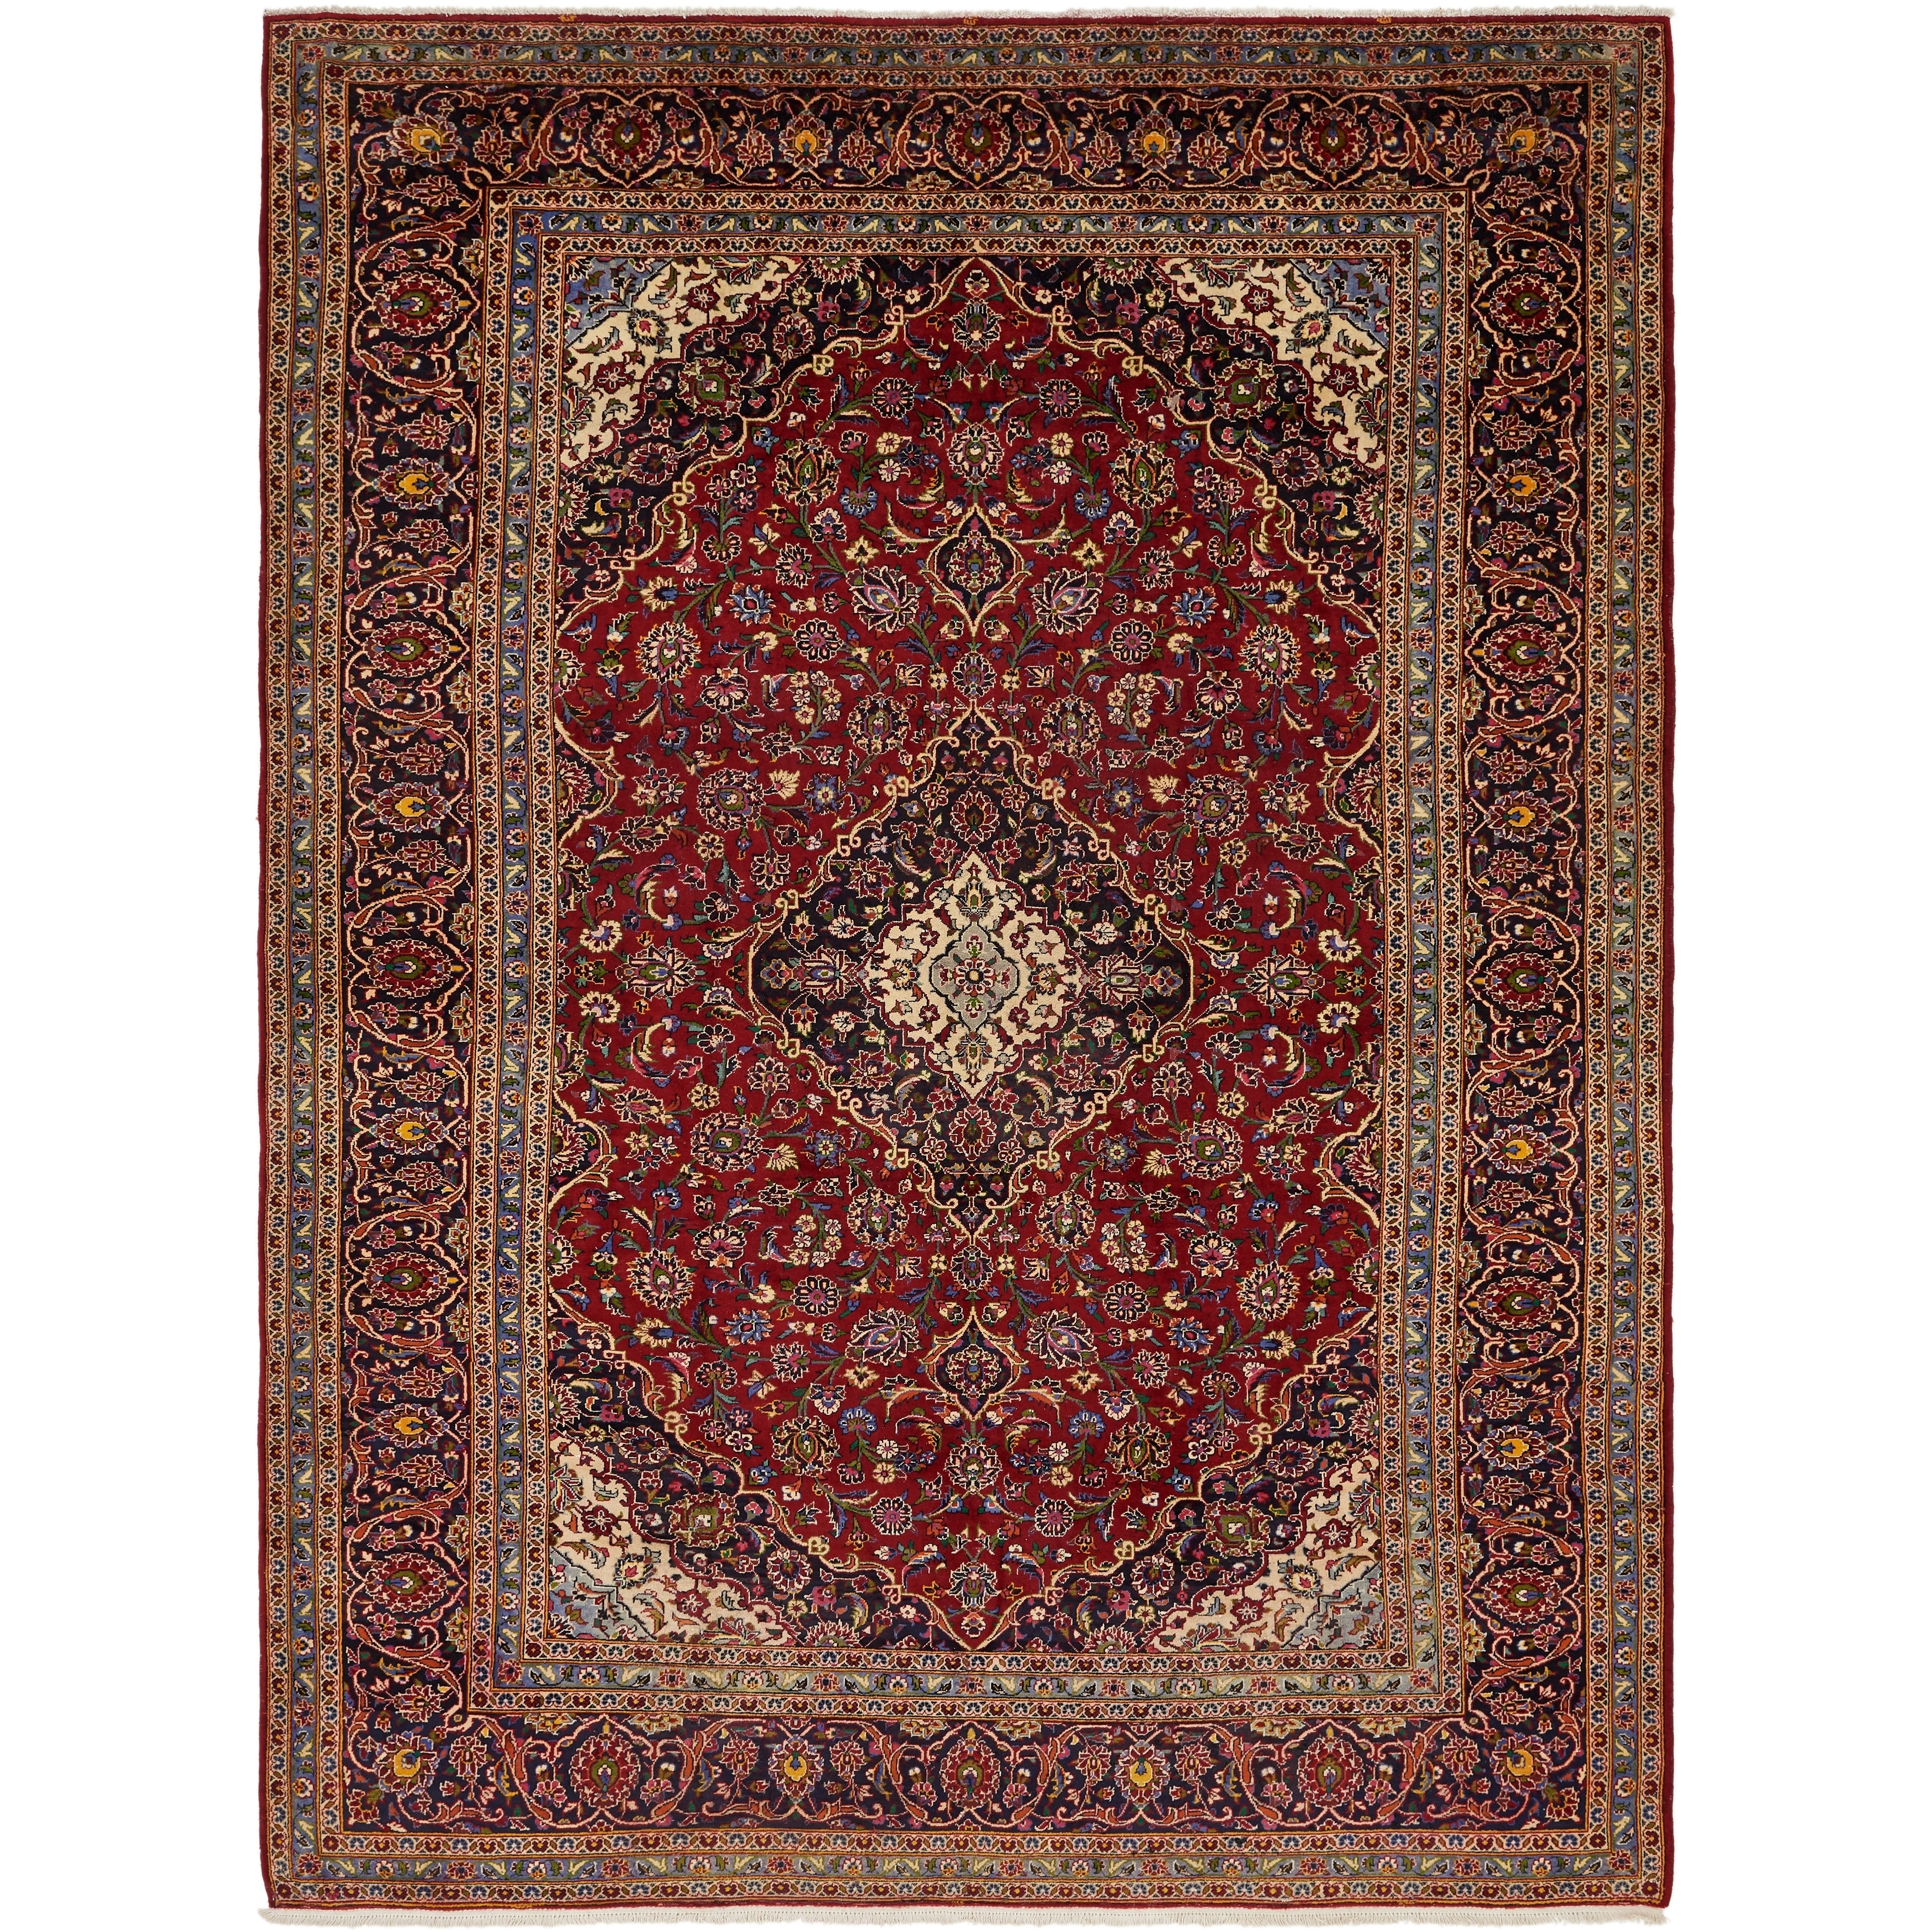 Hand Knotted Kashan Semi Antique Wool Area Rug - 10 2 x 13 10 (Red - 10 2 x 13 10)